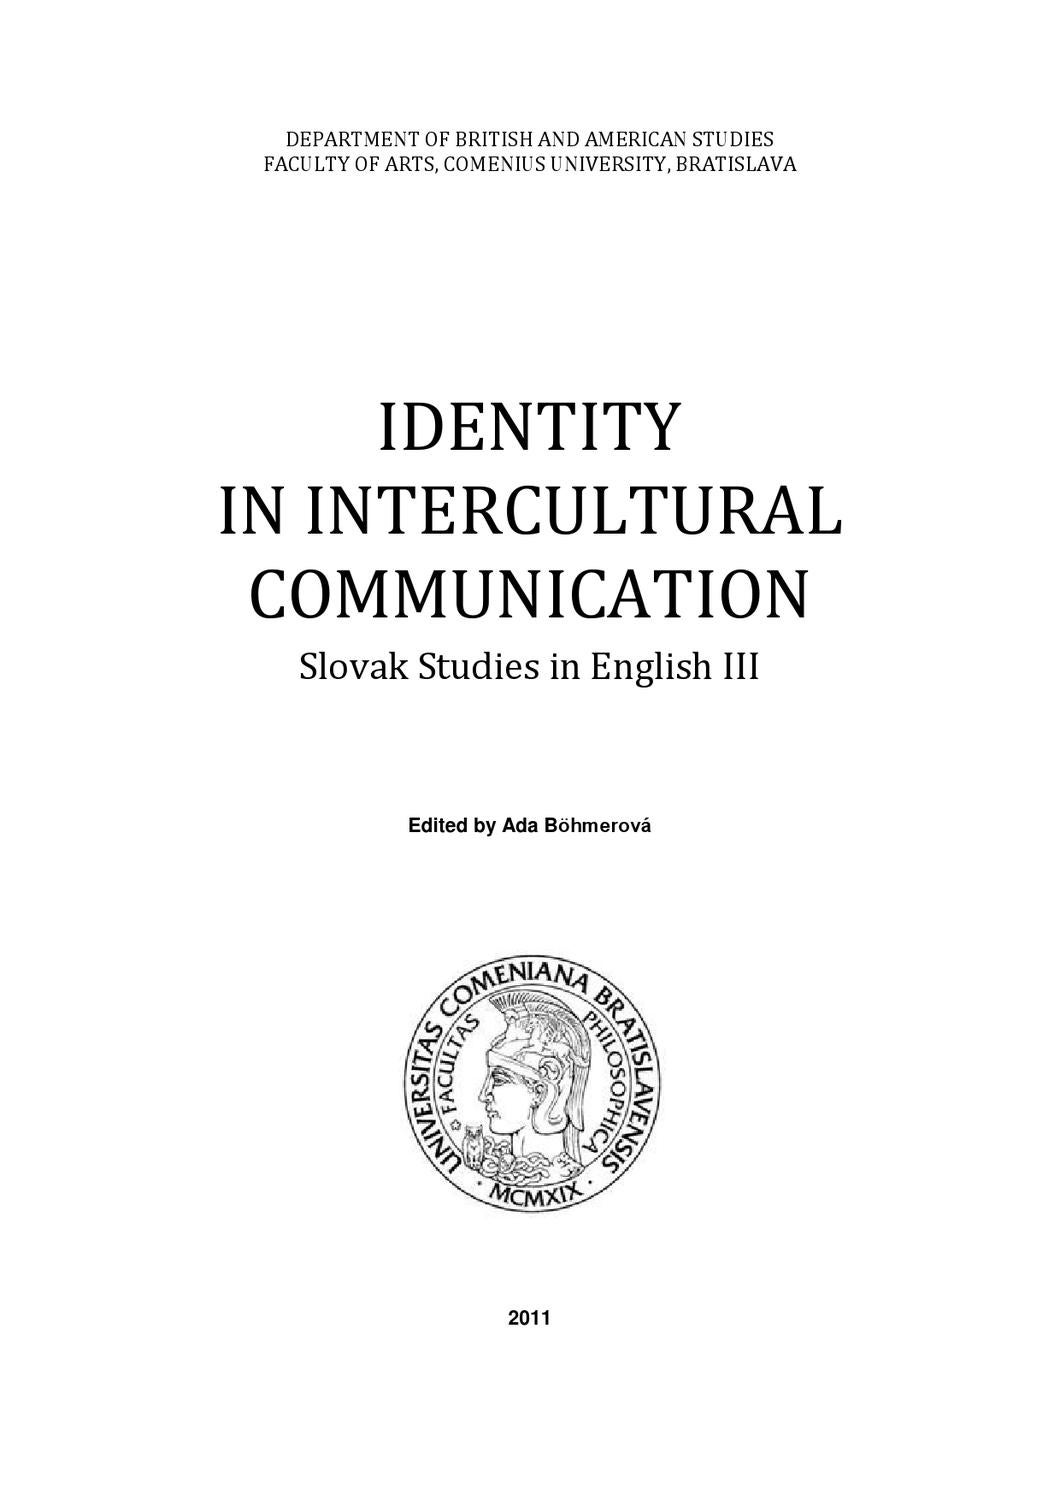 the course paper for intercultural communication Discussed in this paper will be intercultural communication and its importance within education intercultural communication has many barriers and benefits and these will be reviewed as well as the role this type of communication plays in education .